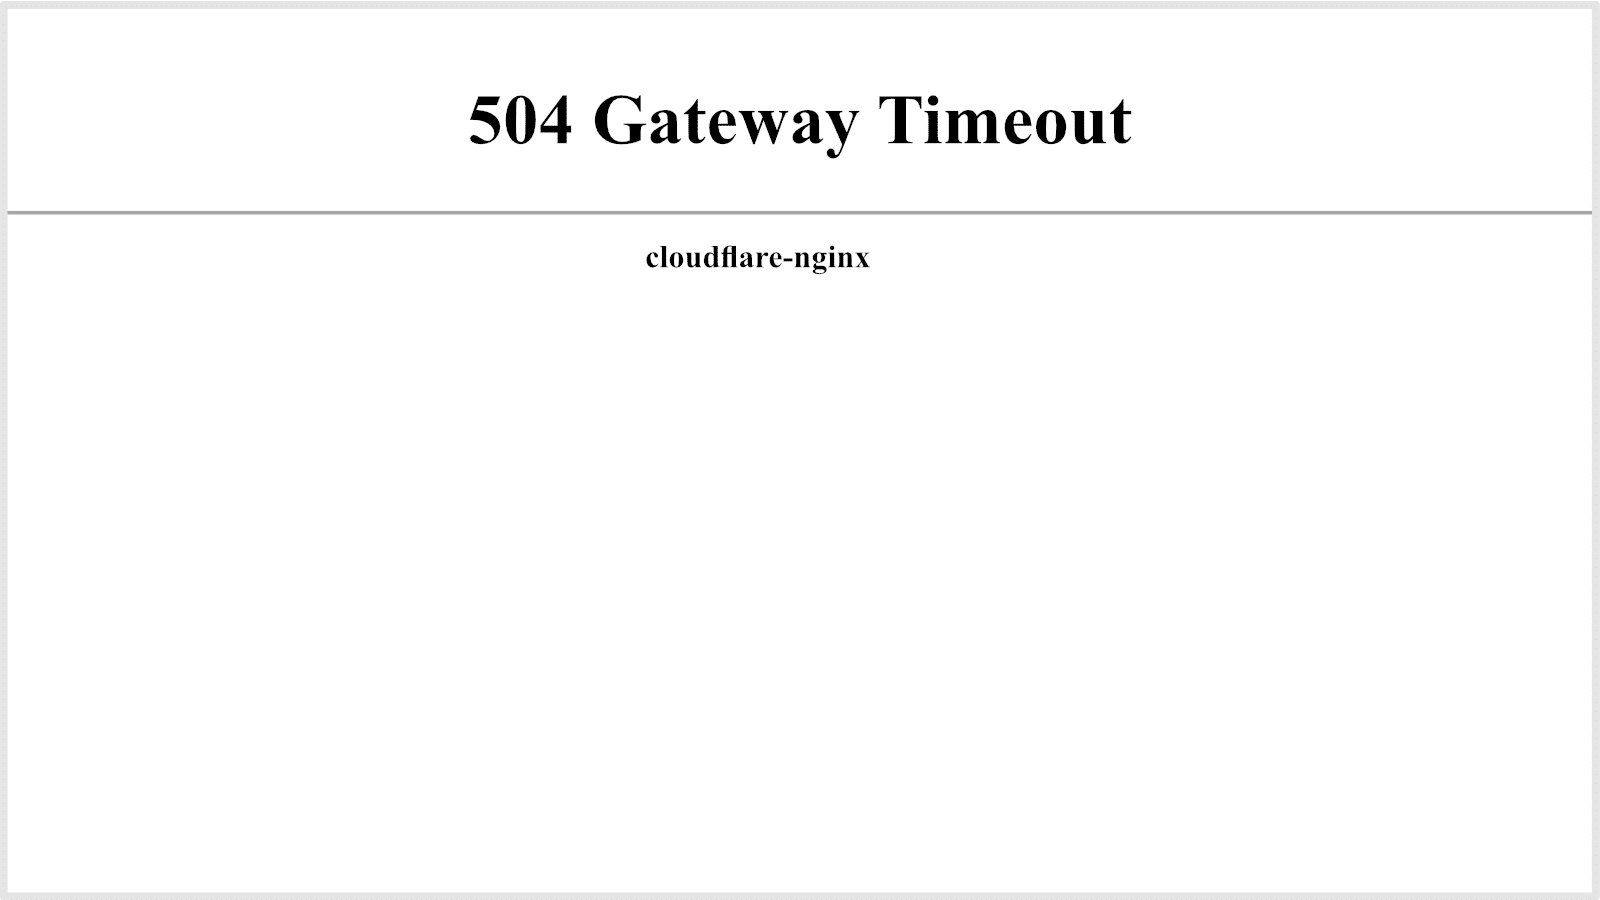 504 gateway timeout no Cloudflare